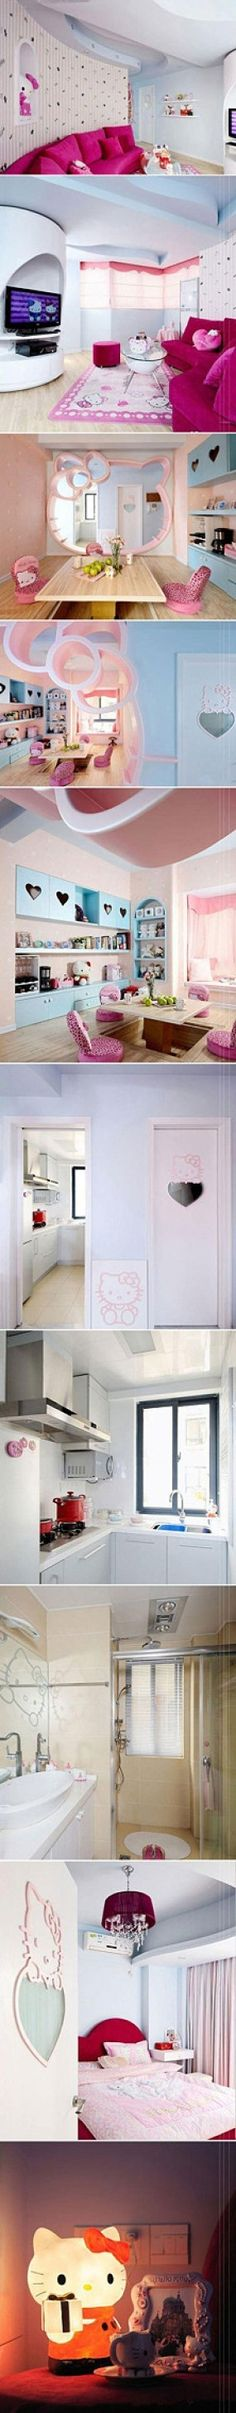 How fun would a Hello Kitty themed house be? Hello Kitty Bedroom, Hello Kitty House, Here Kitty Kitty, Kawaii Room, Hello Kitty Collection, Interior Exterior, New Room, Bohemian Decor, Decoration